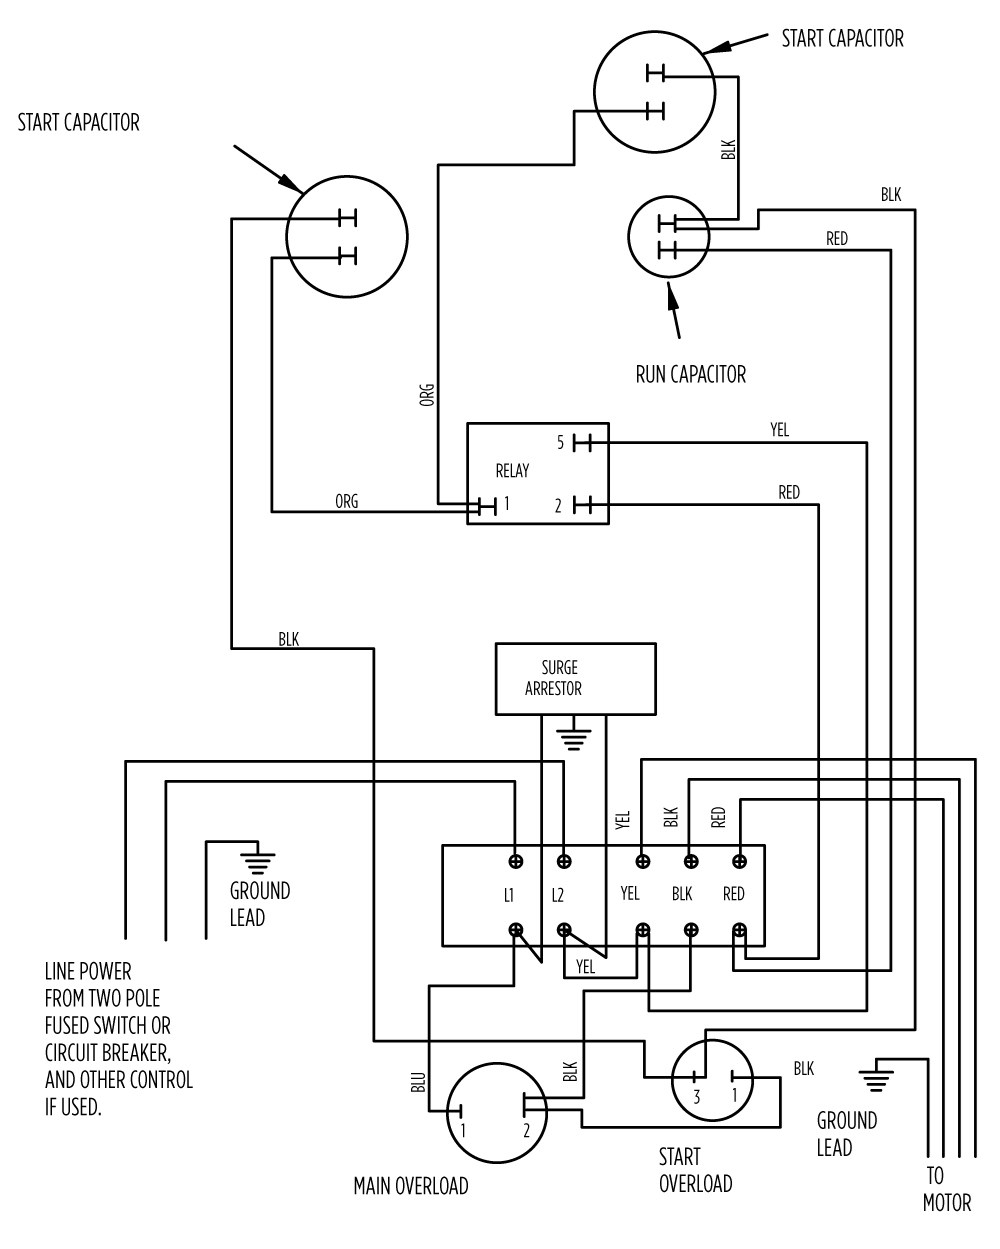 75 hp standard 282 201 9210_aim gallery?format=jpg&quality=80 aim manual page 56 single phase motors and controls motor franklin electric wiring diagrams at n-0.co